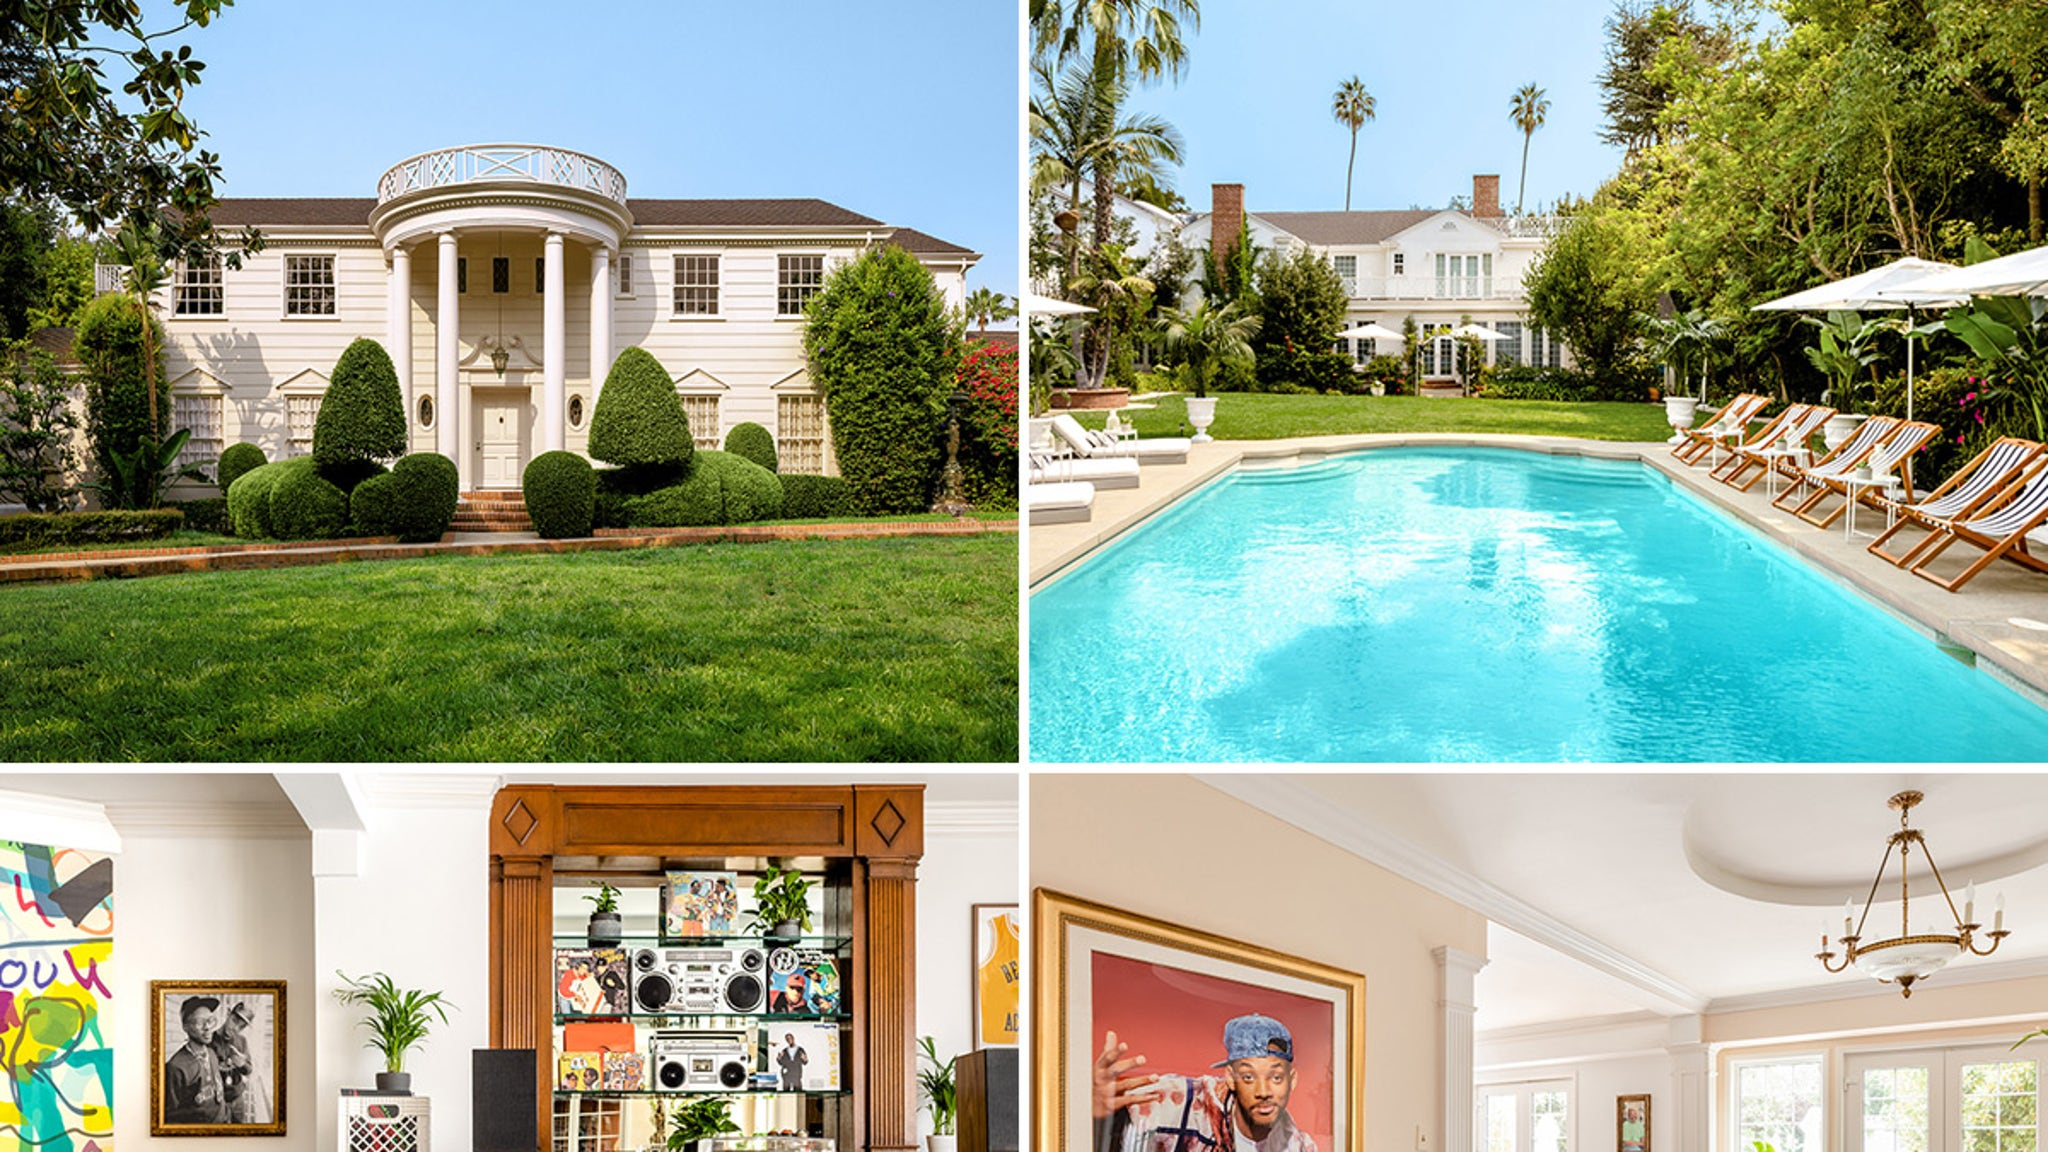 'Fresh Prince of Bell-Air' Mansion Hits Airbnb for Royal Stays thumbnail